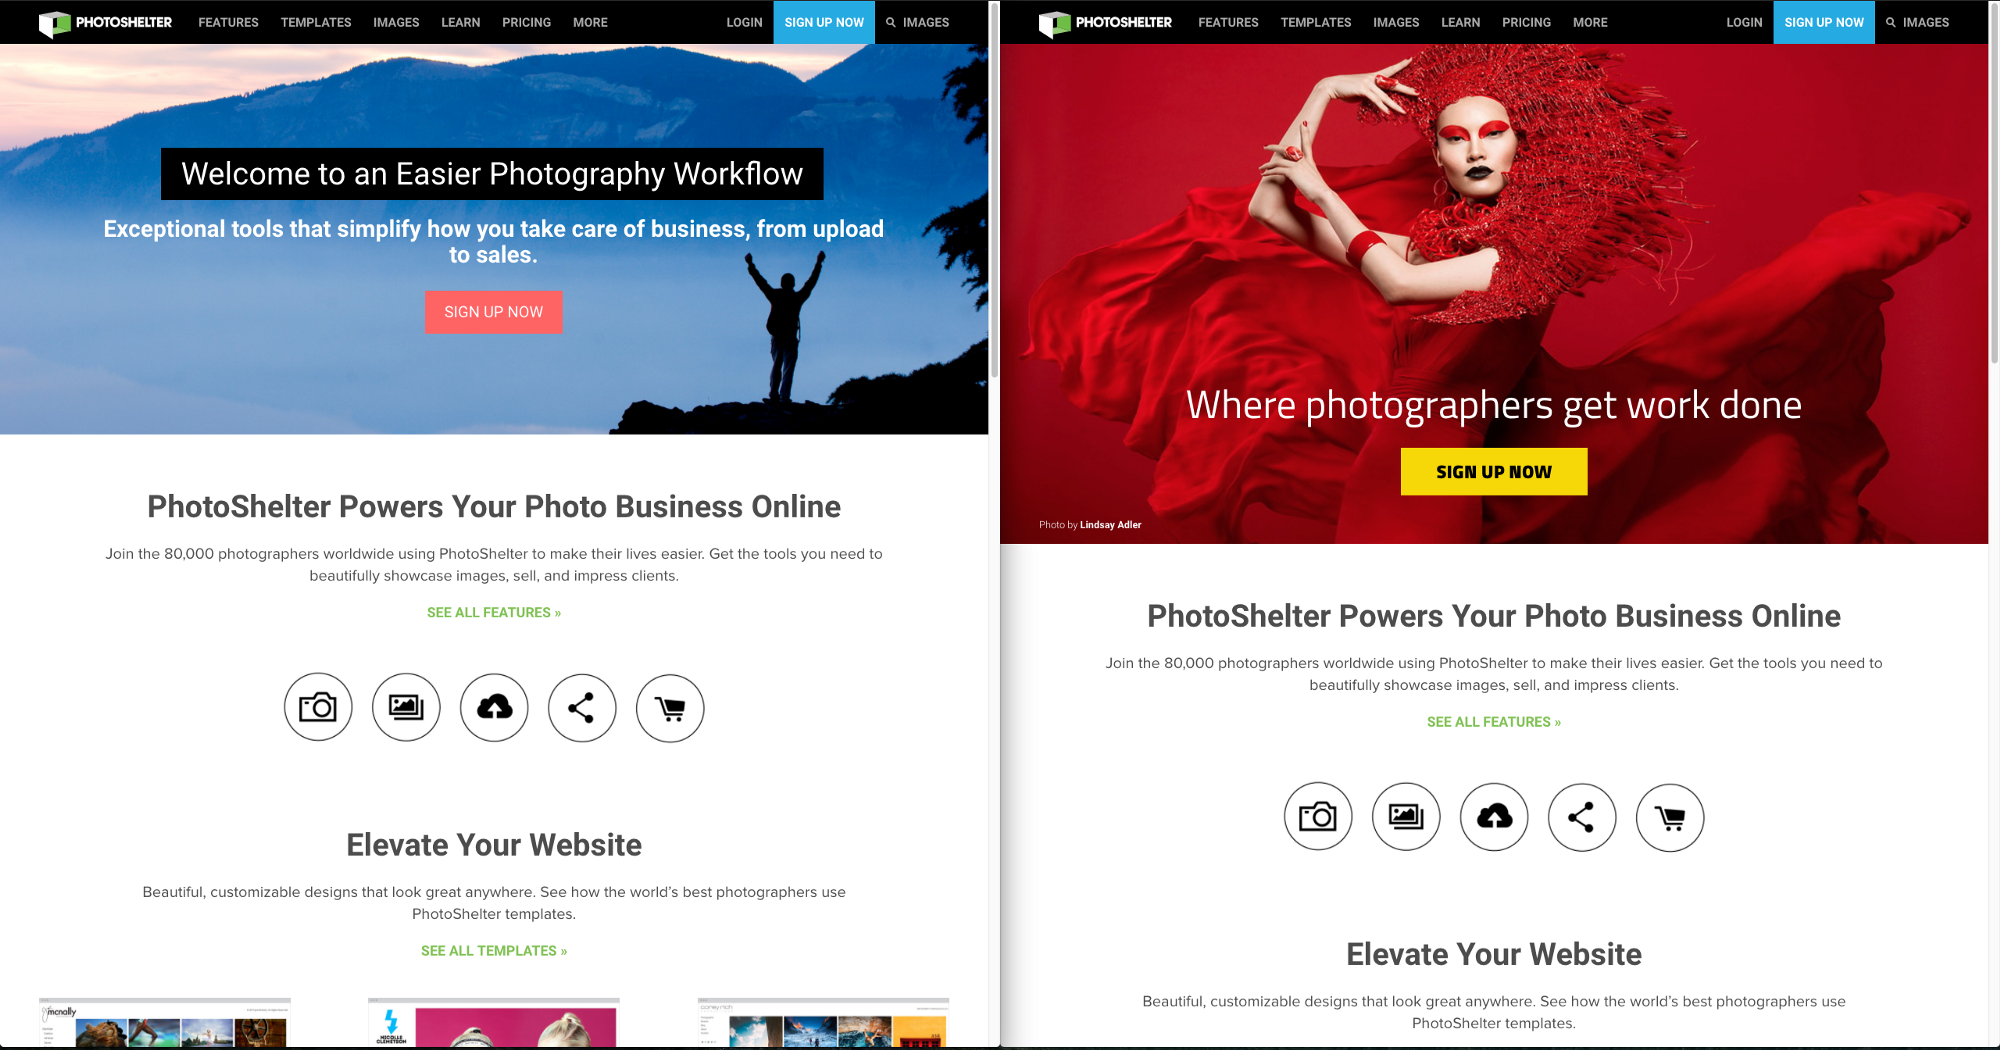 Building A Sharp New Look At PhotoShelter PhotoShelter Engineering - Photoshelter templates